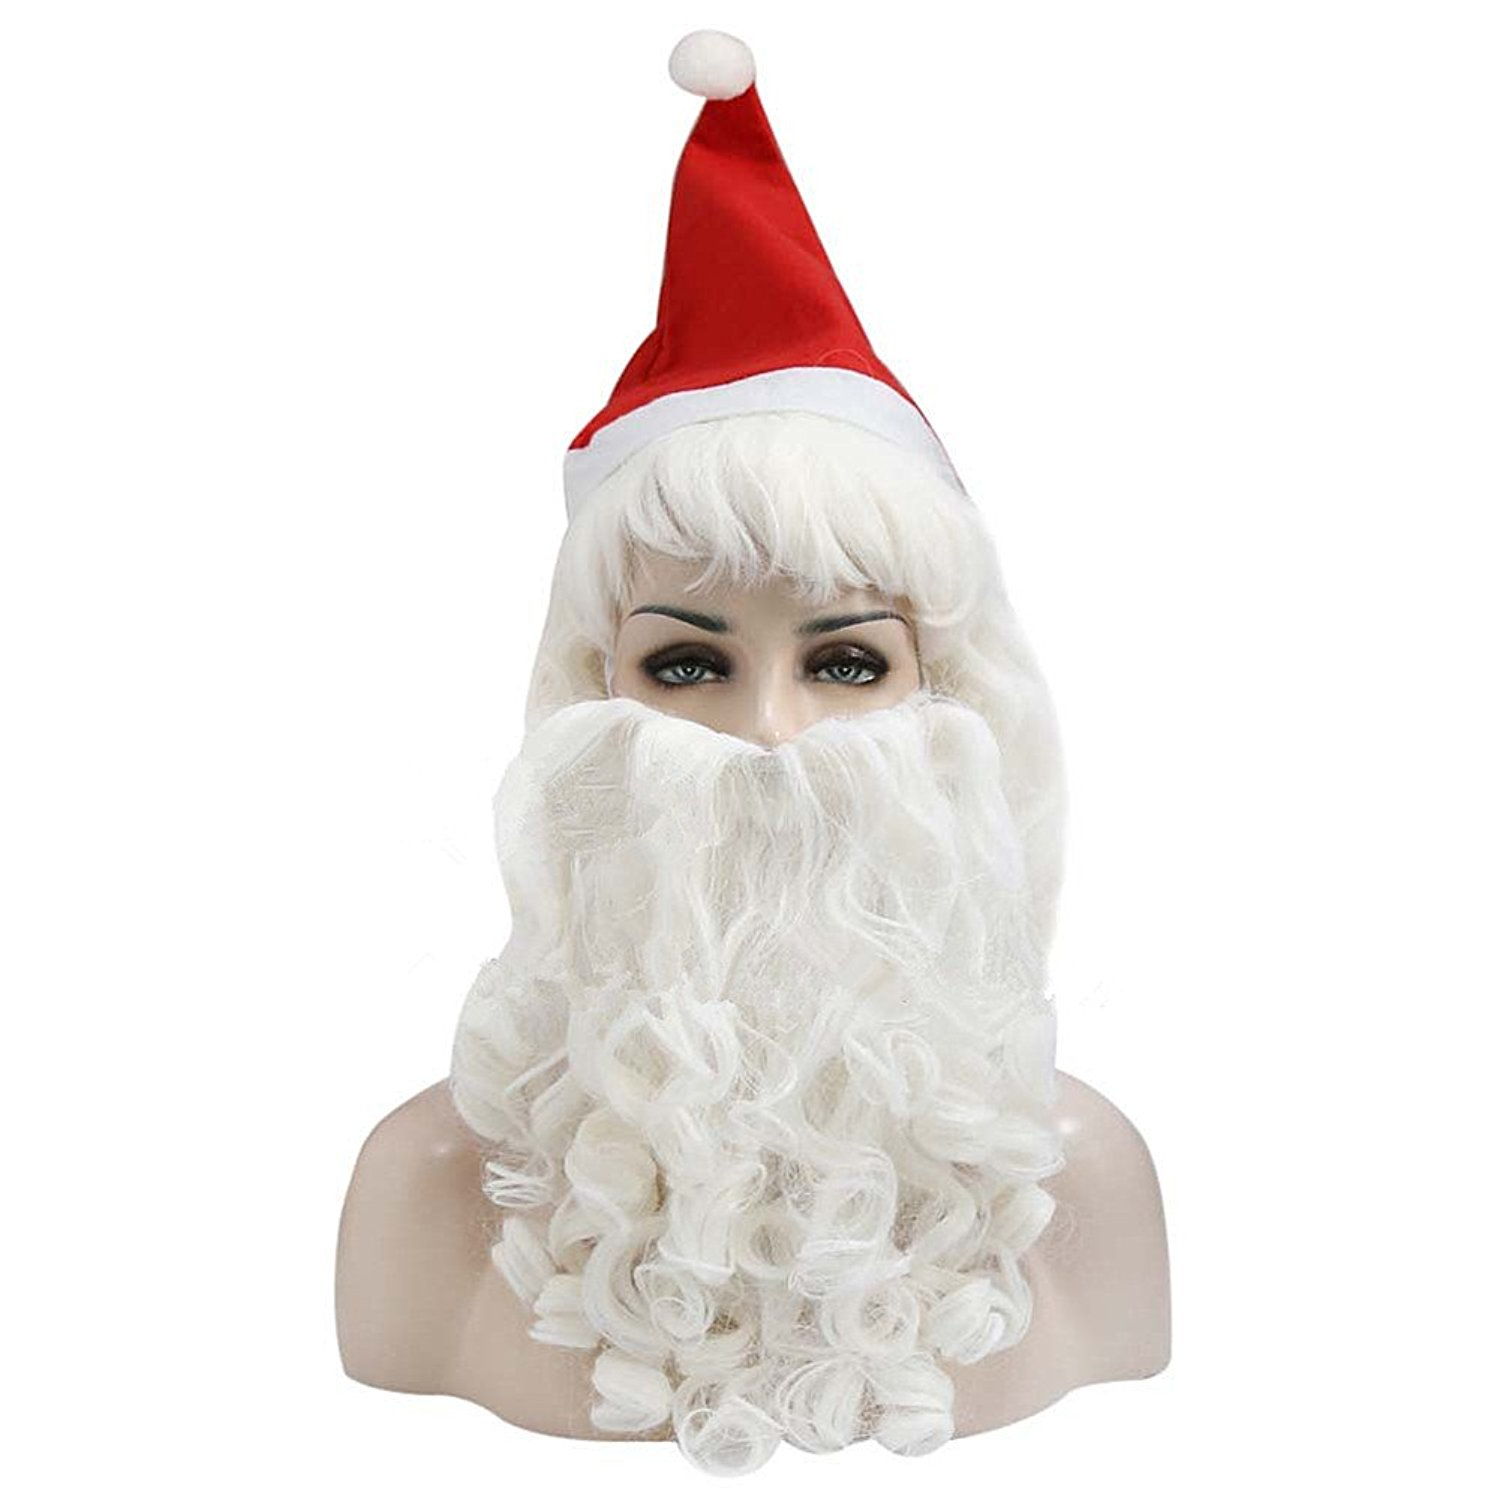 Minibaby 3pcs/Set White Curl Waves Beard Santa Claus Hat Wig Makeup For Girls/Boys– Pretend Play & Dress-up Make Up Kit